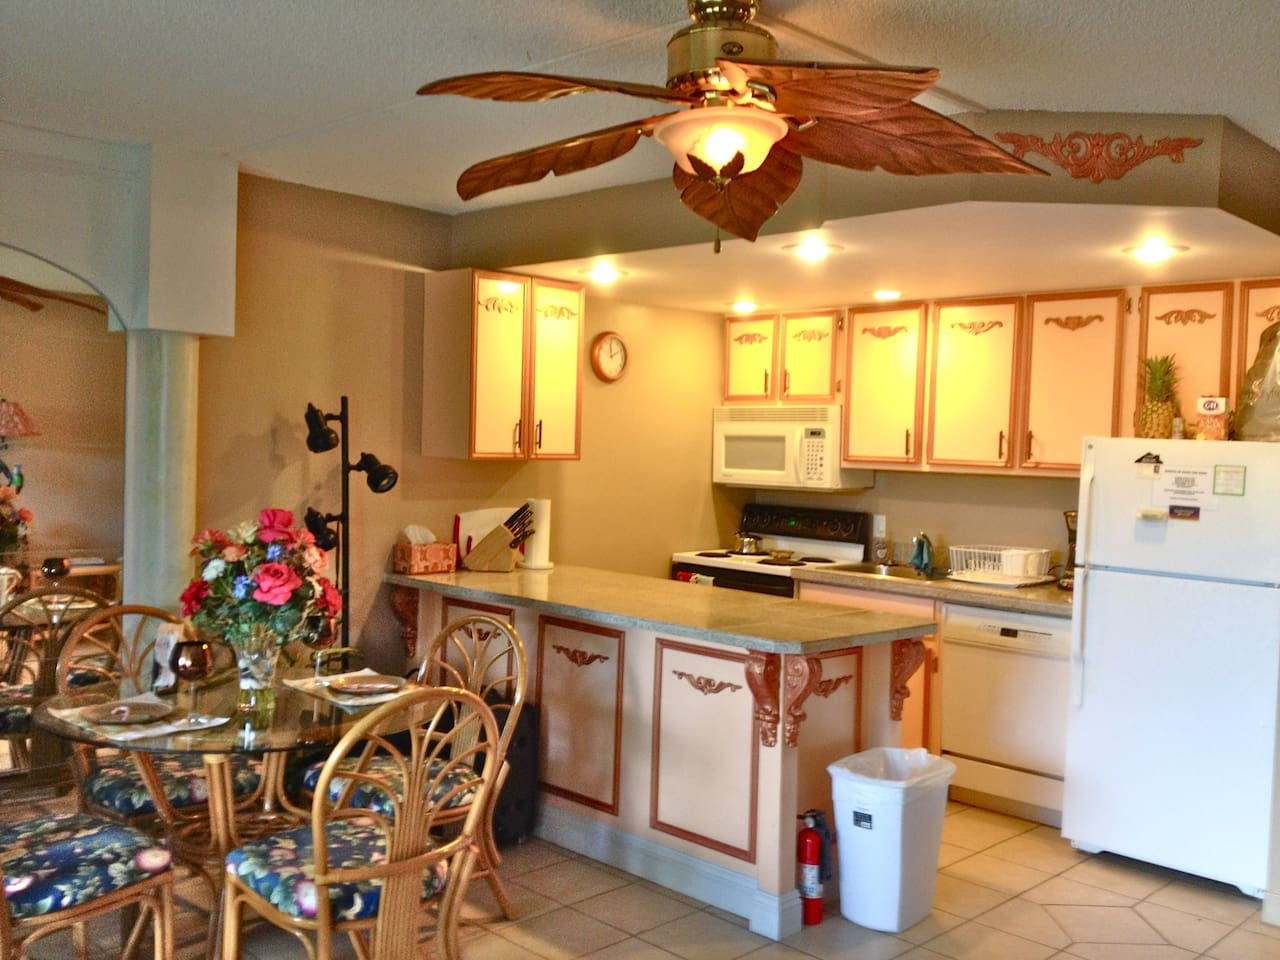 Fully equipped kitchen, with all the utencils you will need!